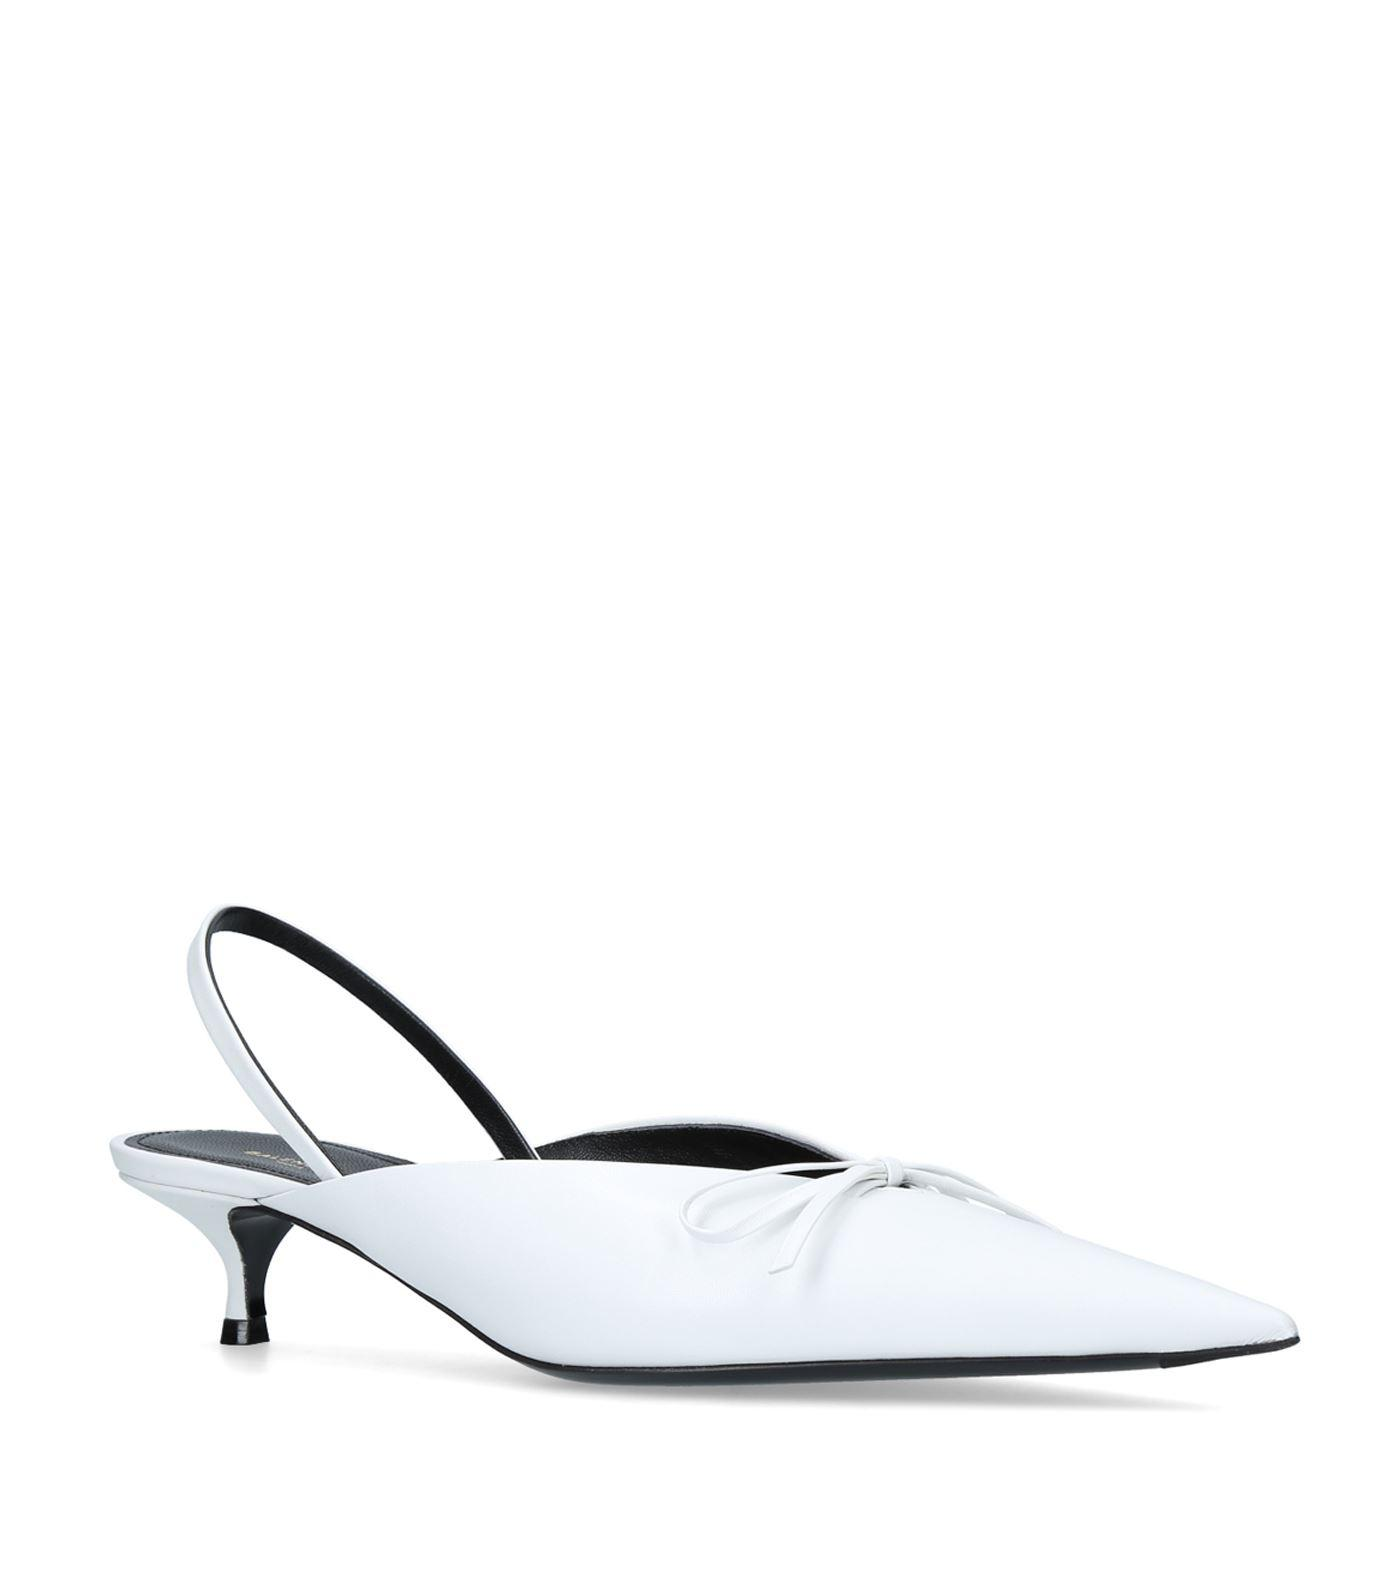 Balenciaga White Leather Knife Mules